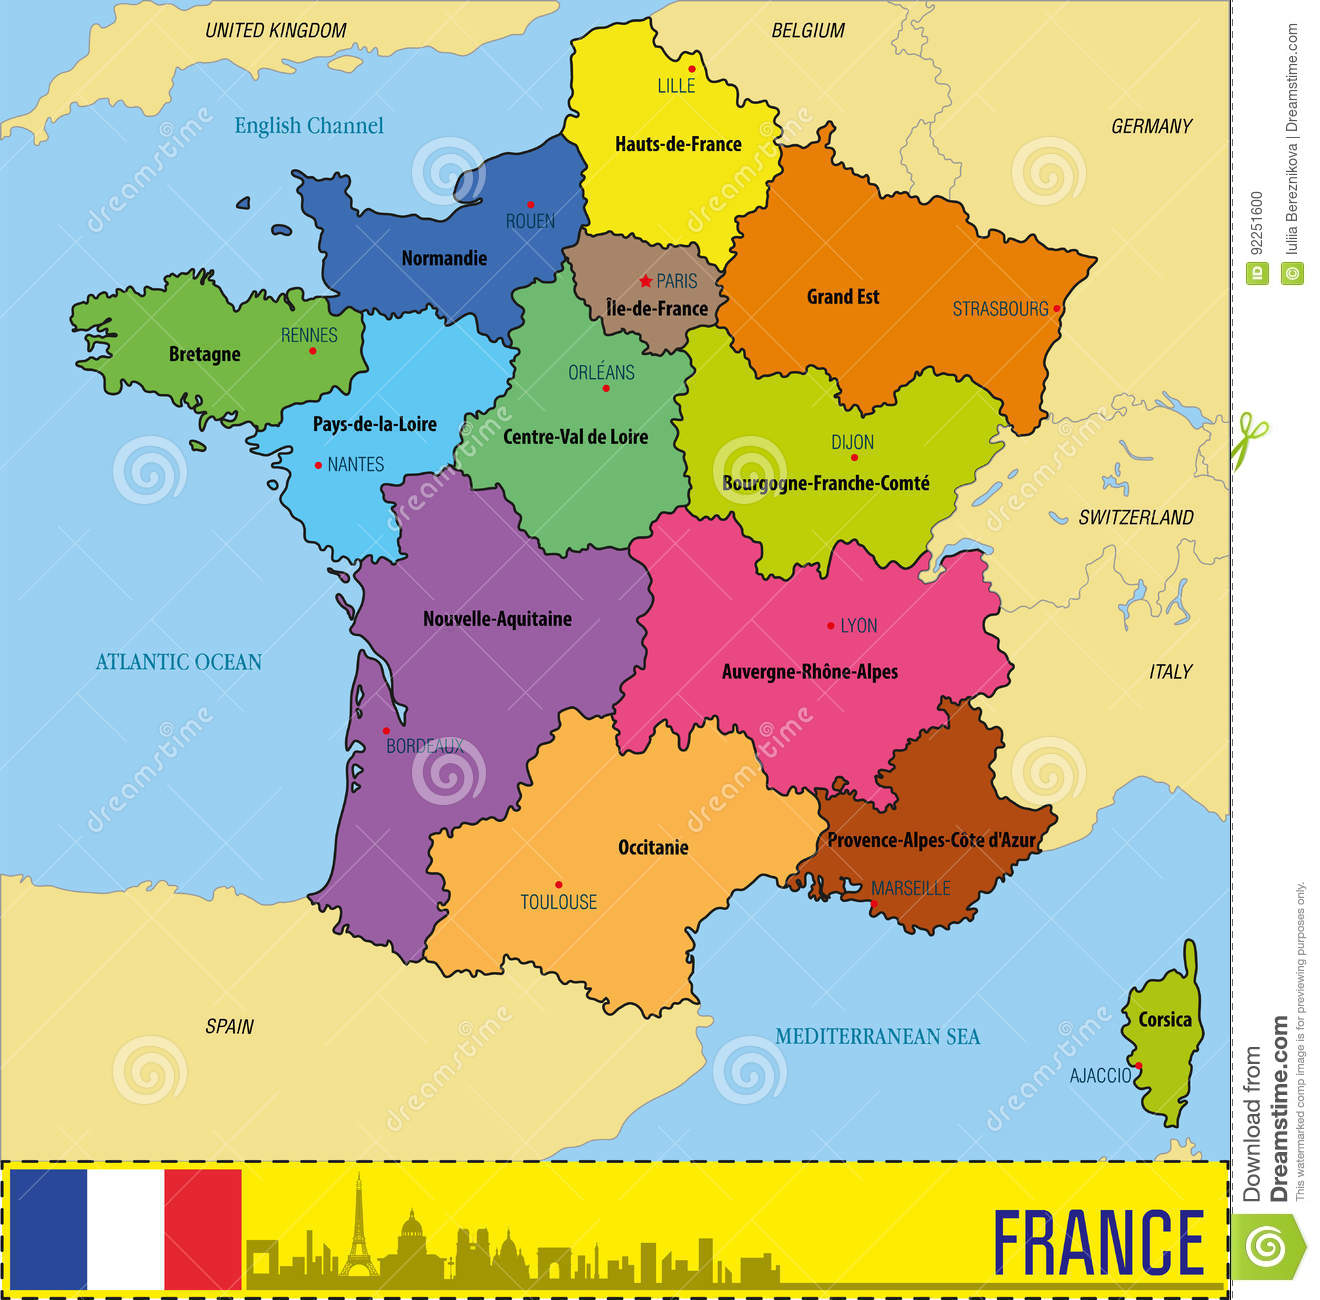 France Map With Regions.France Map With Regions And Their Capitals Stock Vector